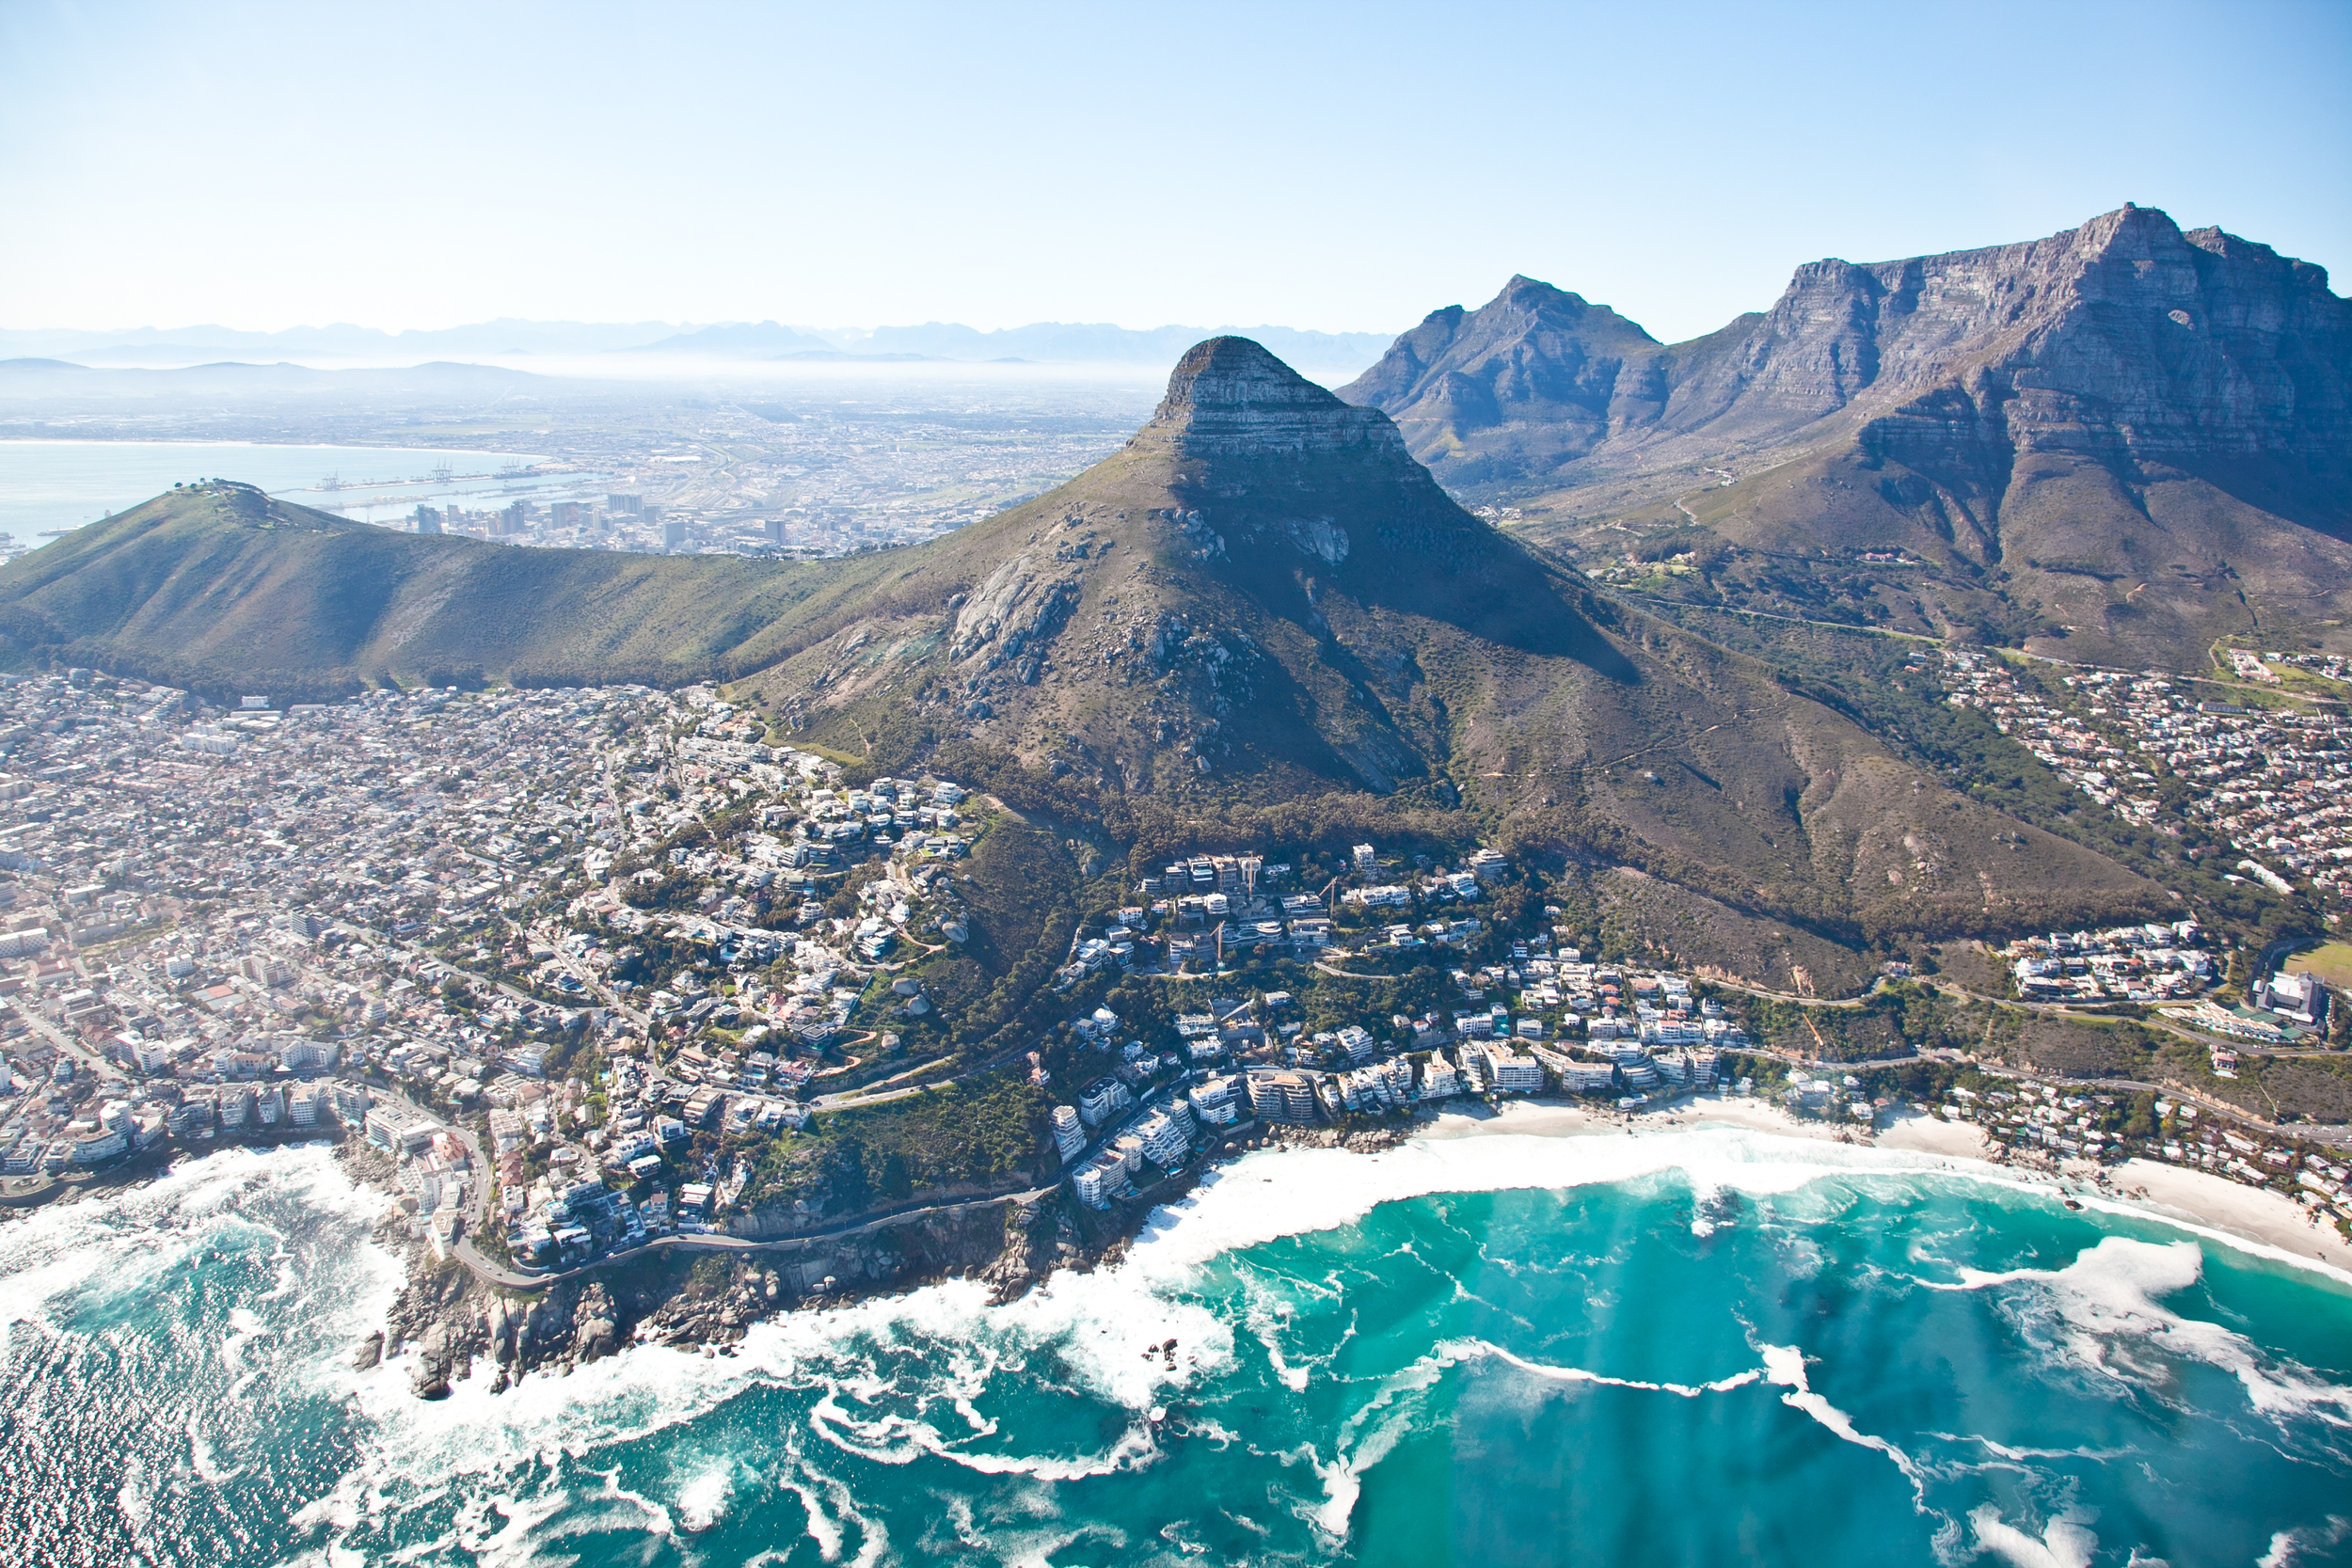 IMG_4820-cape-town-south-africa-helicopter-ride-trisa-taro.jpg